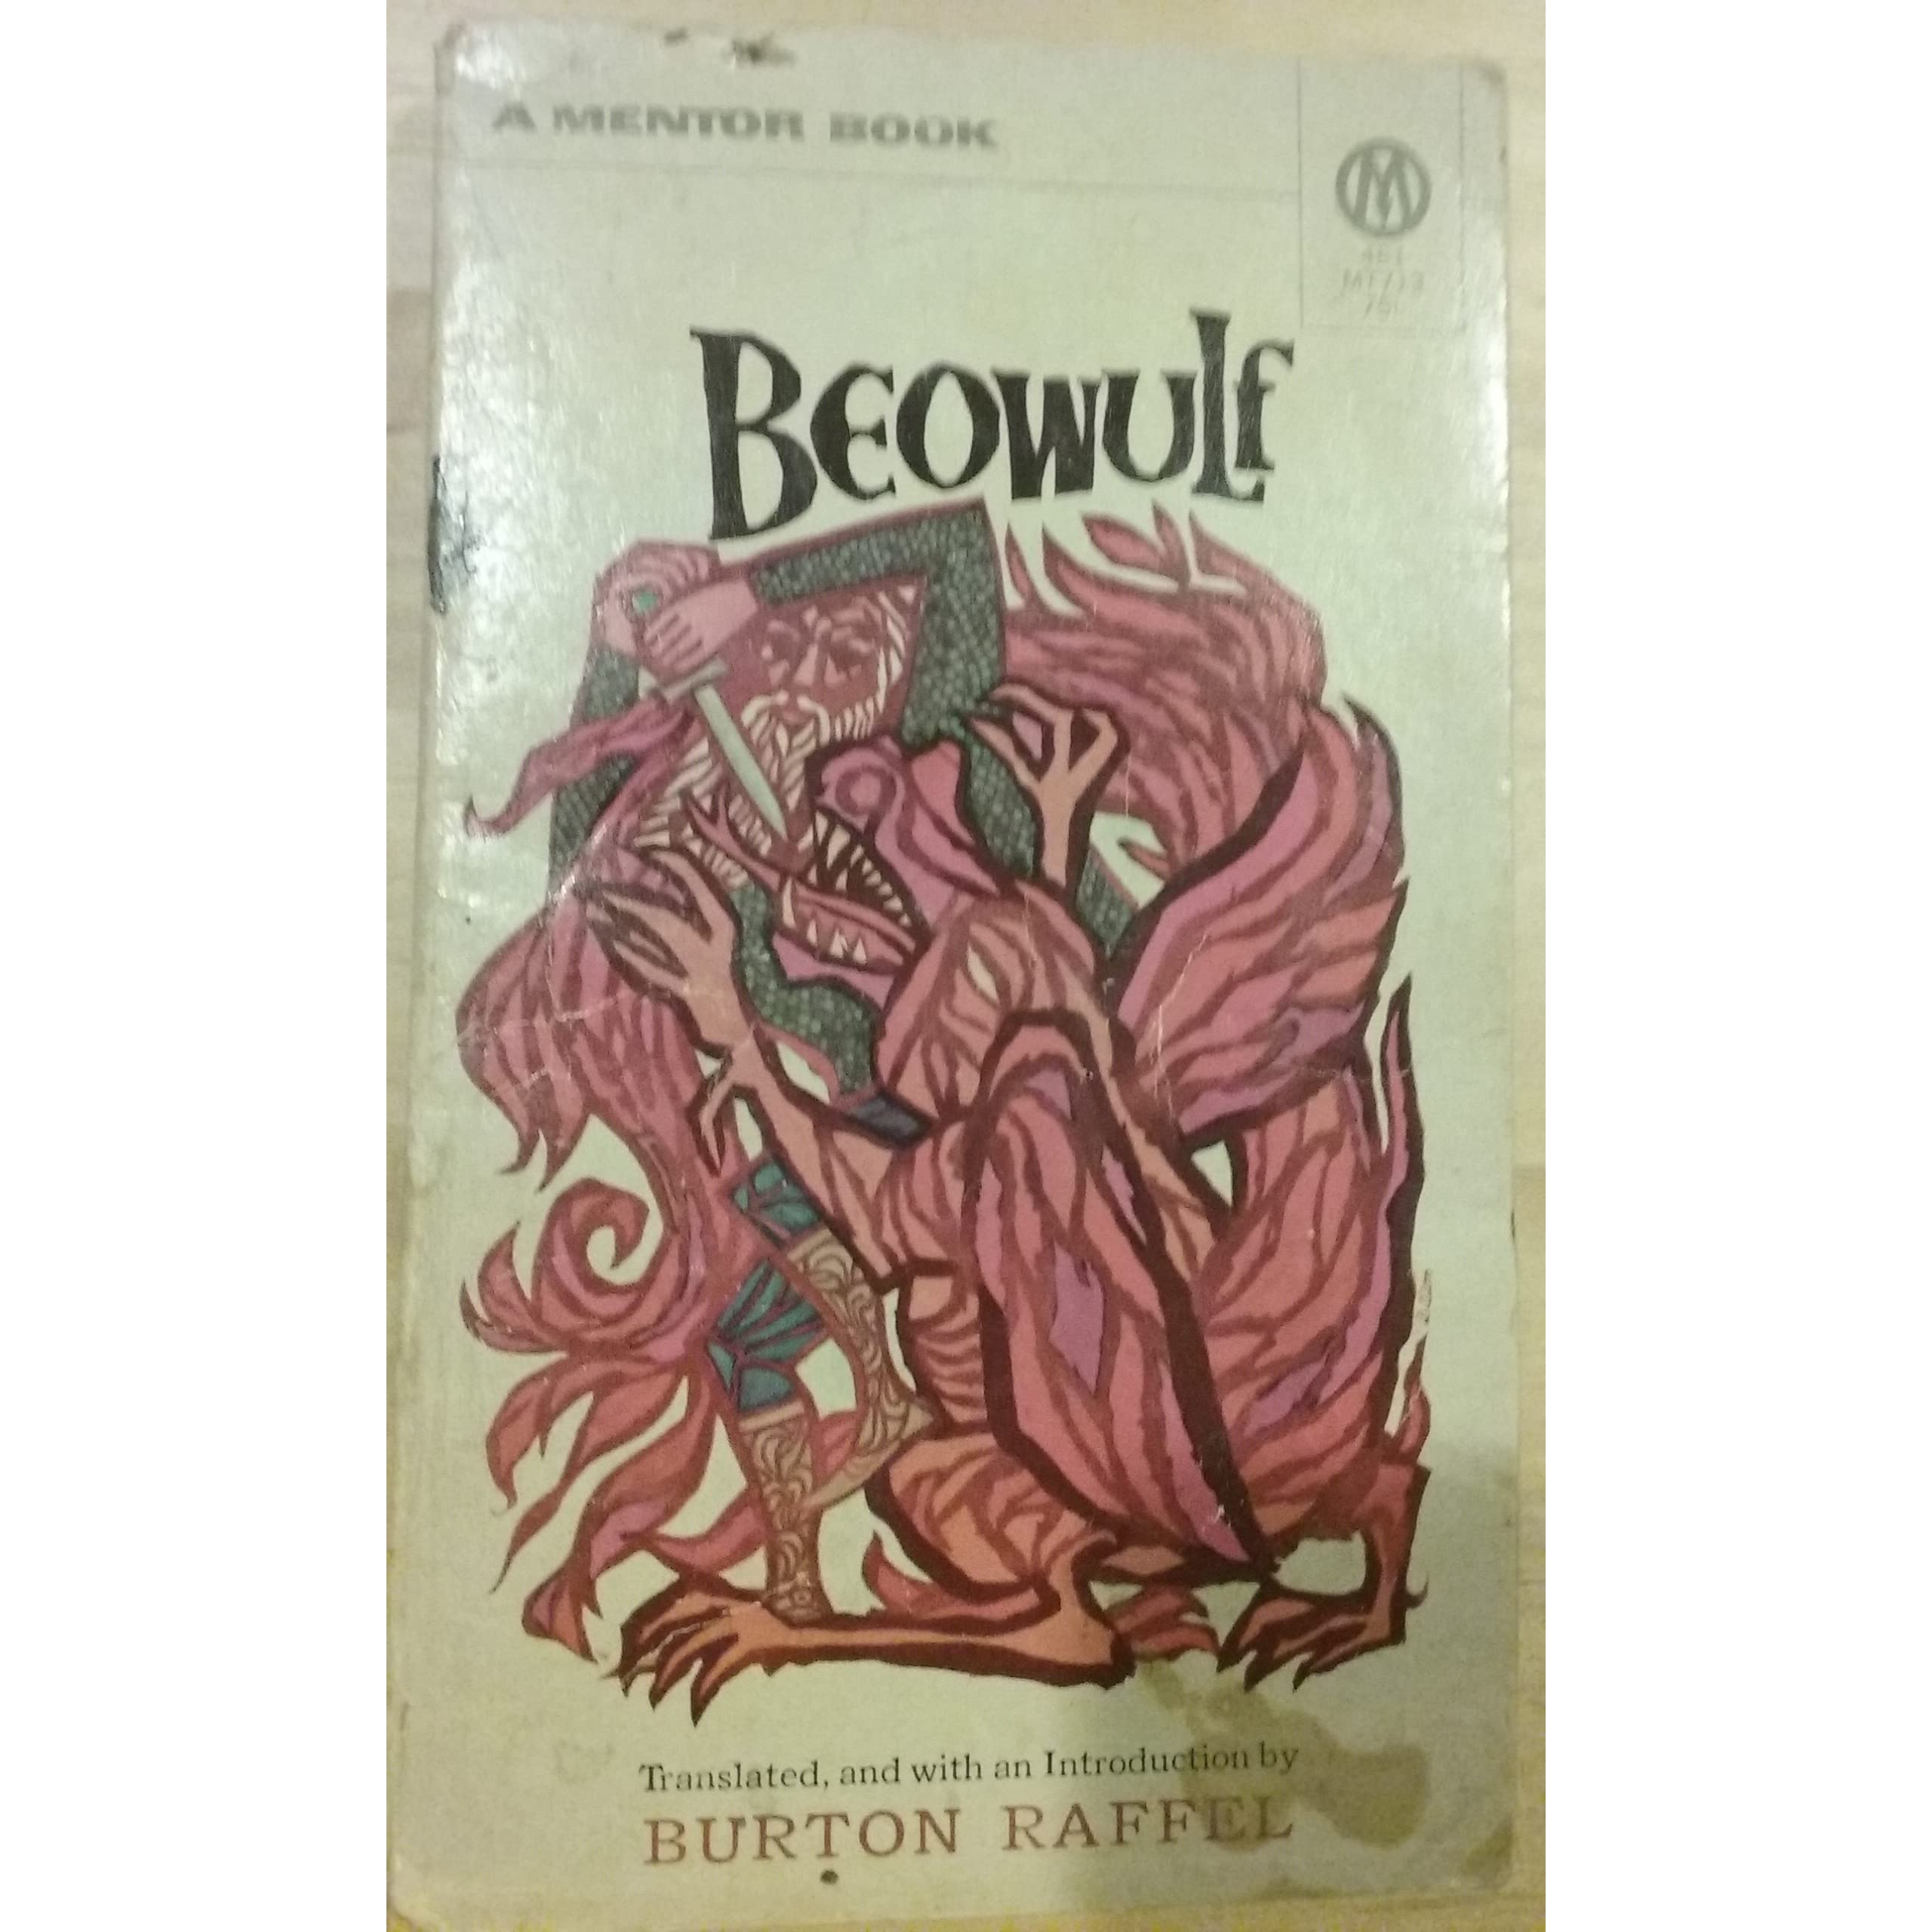 beowulf by burton raffel 10/24/12 the monster grendel from beowulf translated by burton raffel the monster grendel 1 wwwnexuslearningnet/books/elements_of_lit_course6/anglo_saxon_period/the .